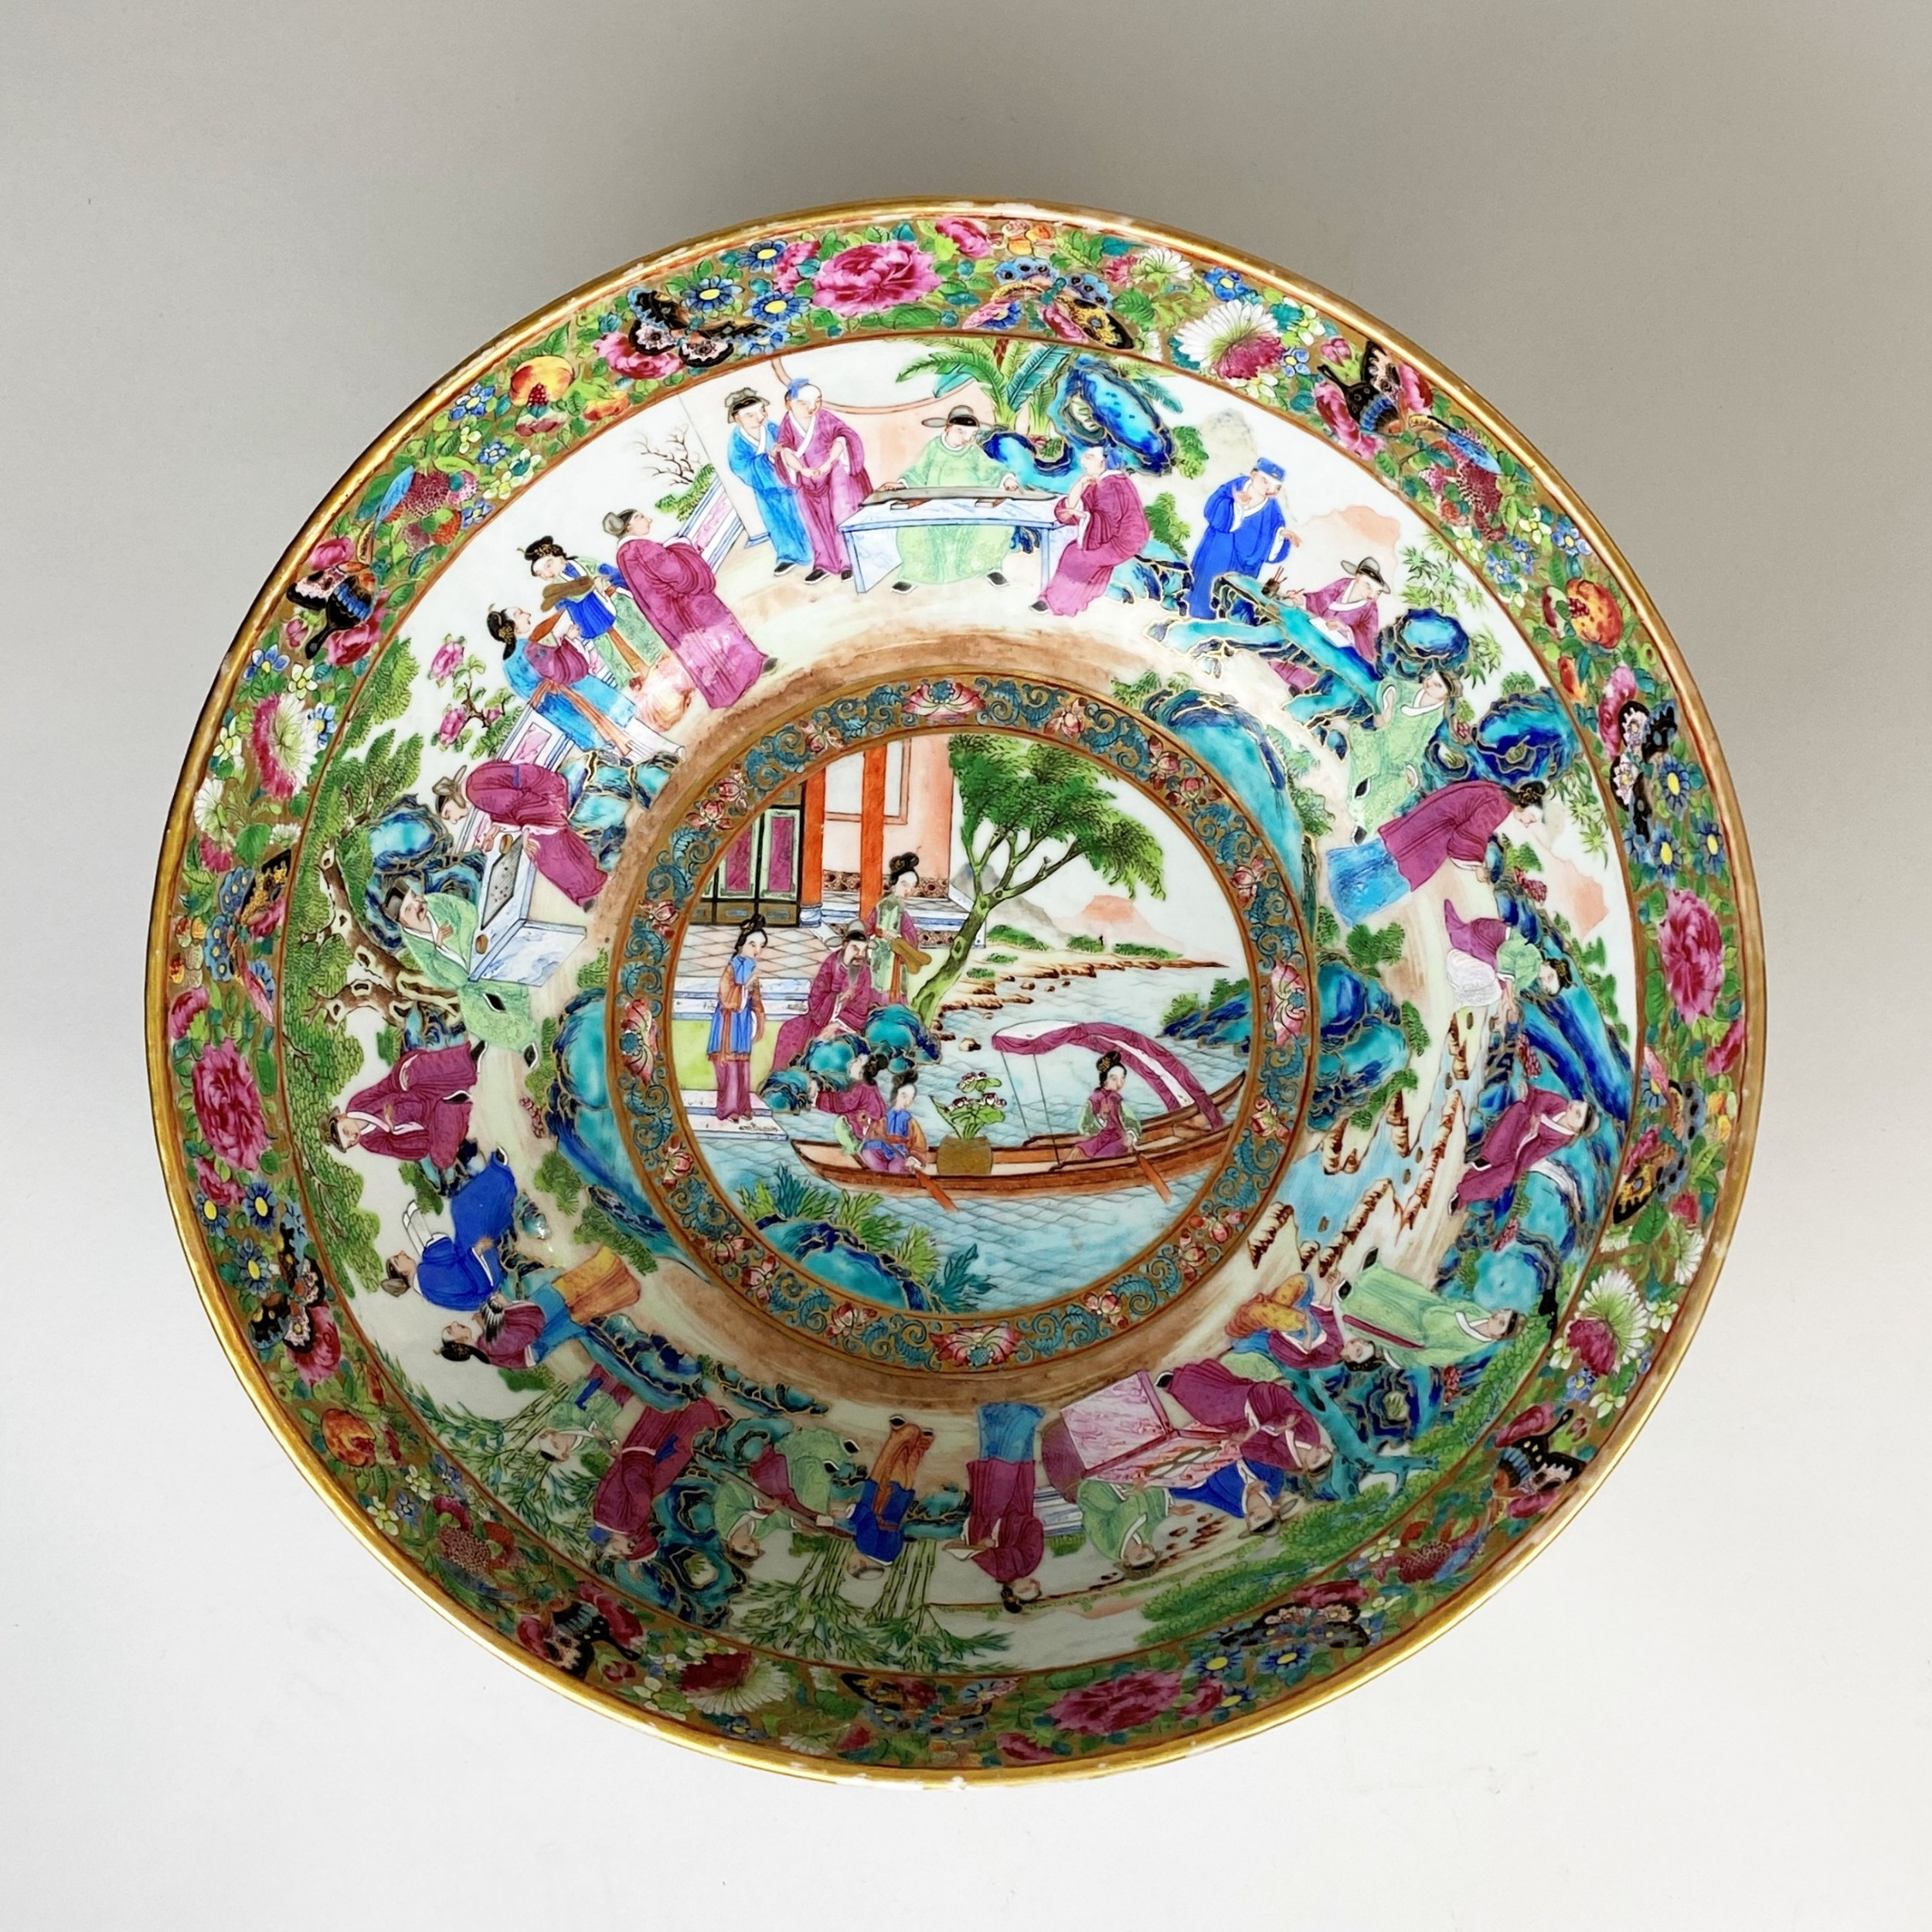 a decorative early 19th century canton punch bowl and stand